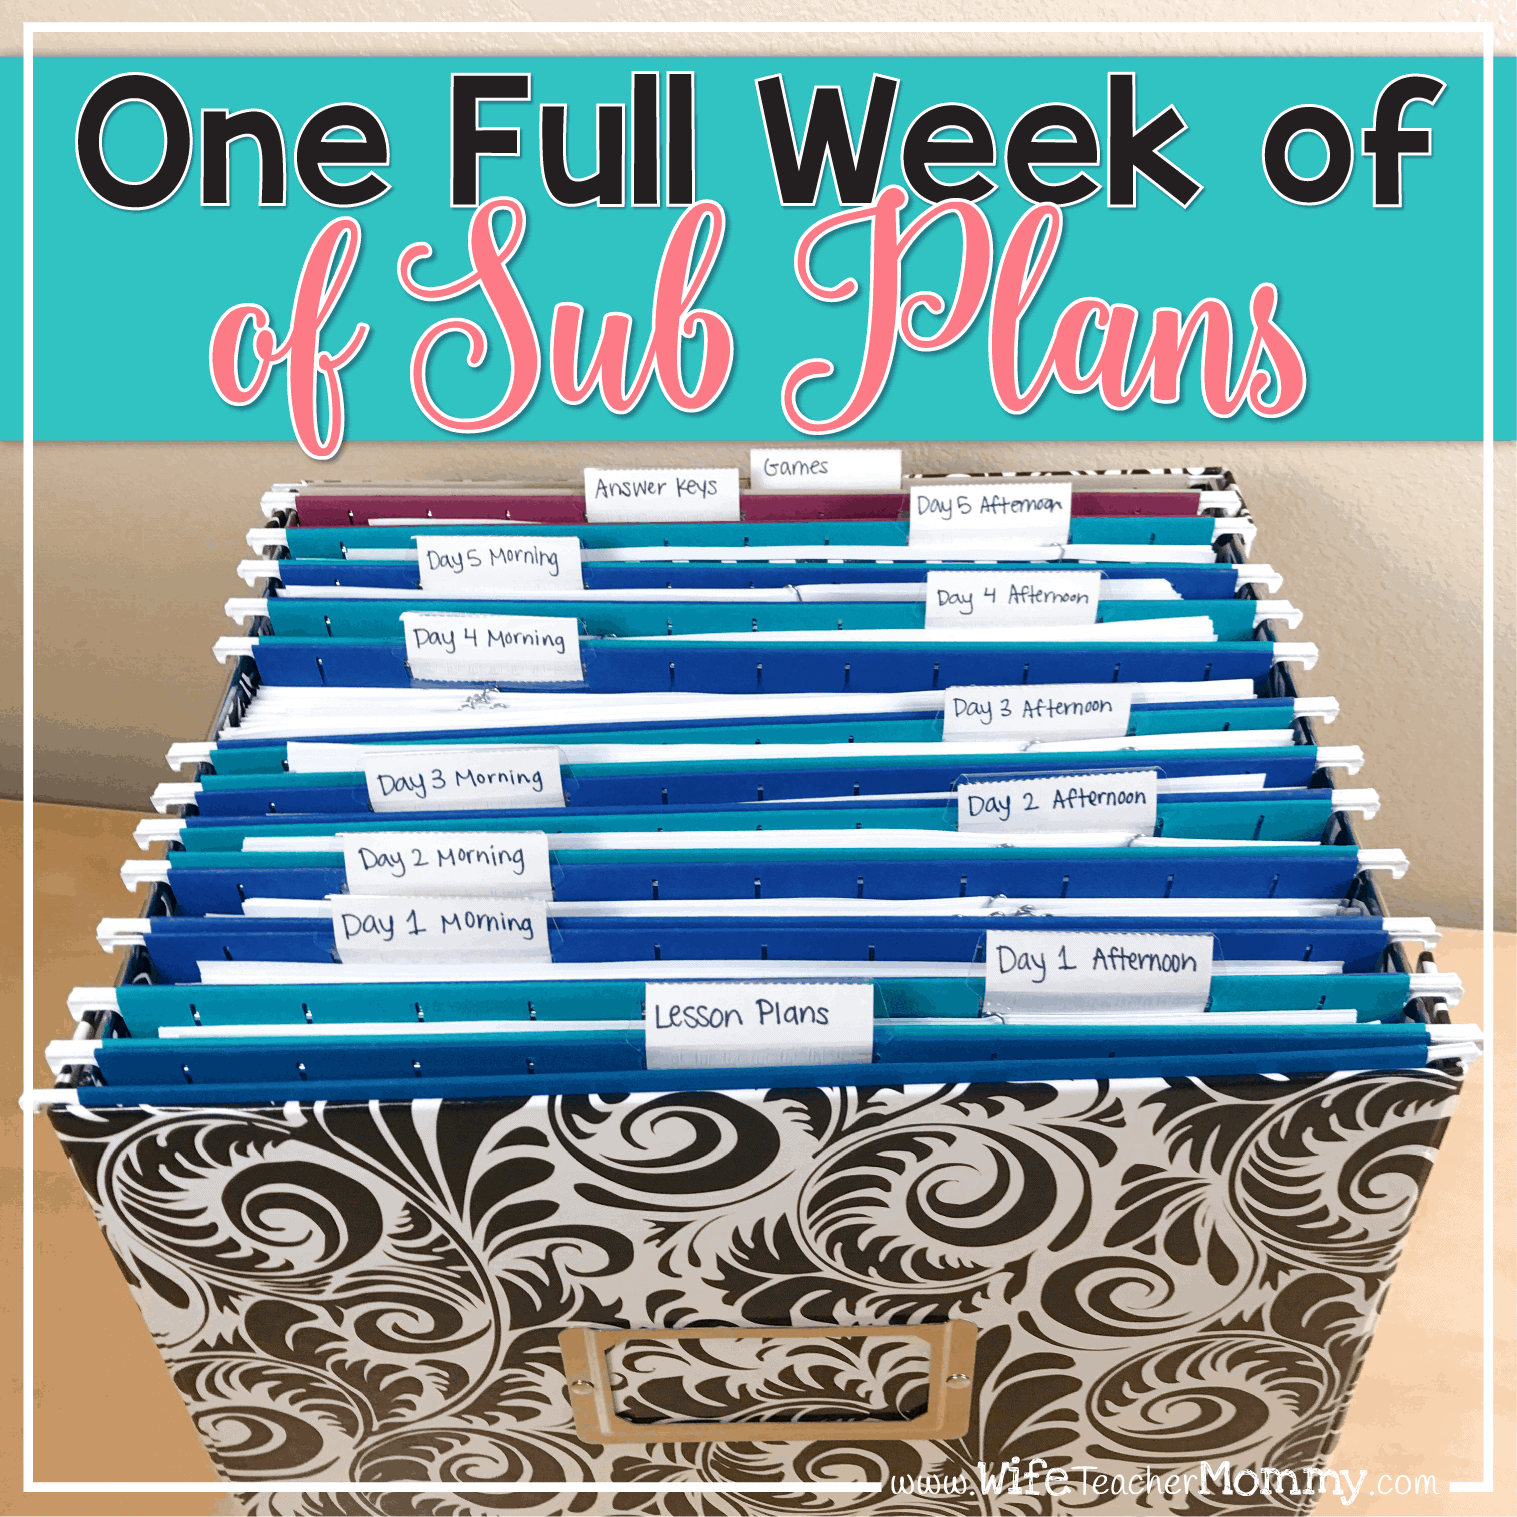 You could win a FULL WEEK of sub plans and more with the #WinMySubStuff giveaway!